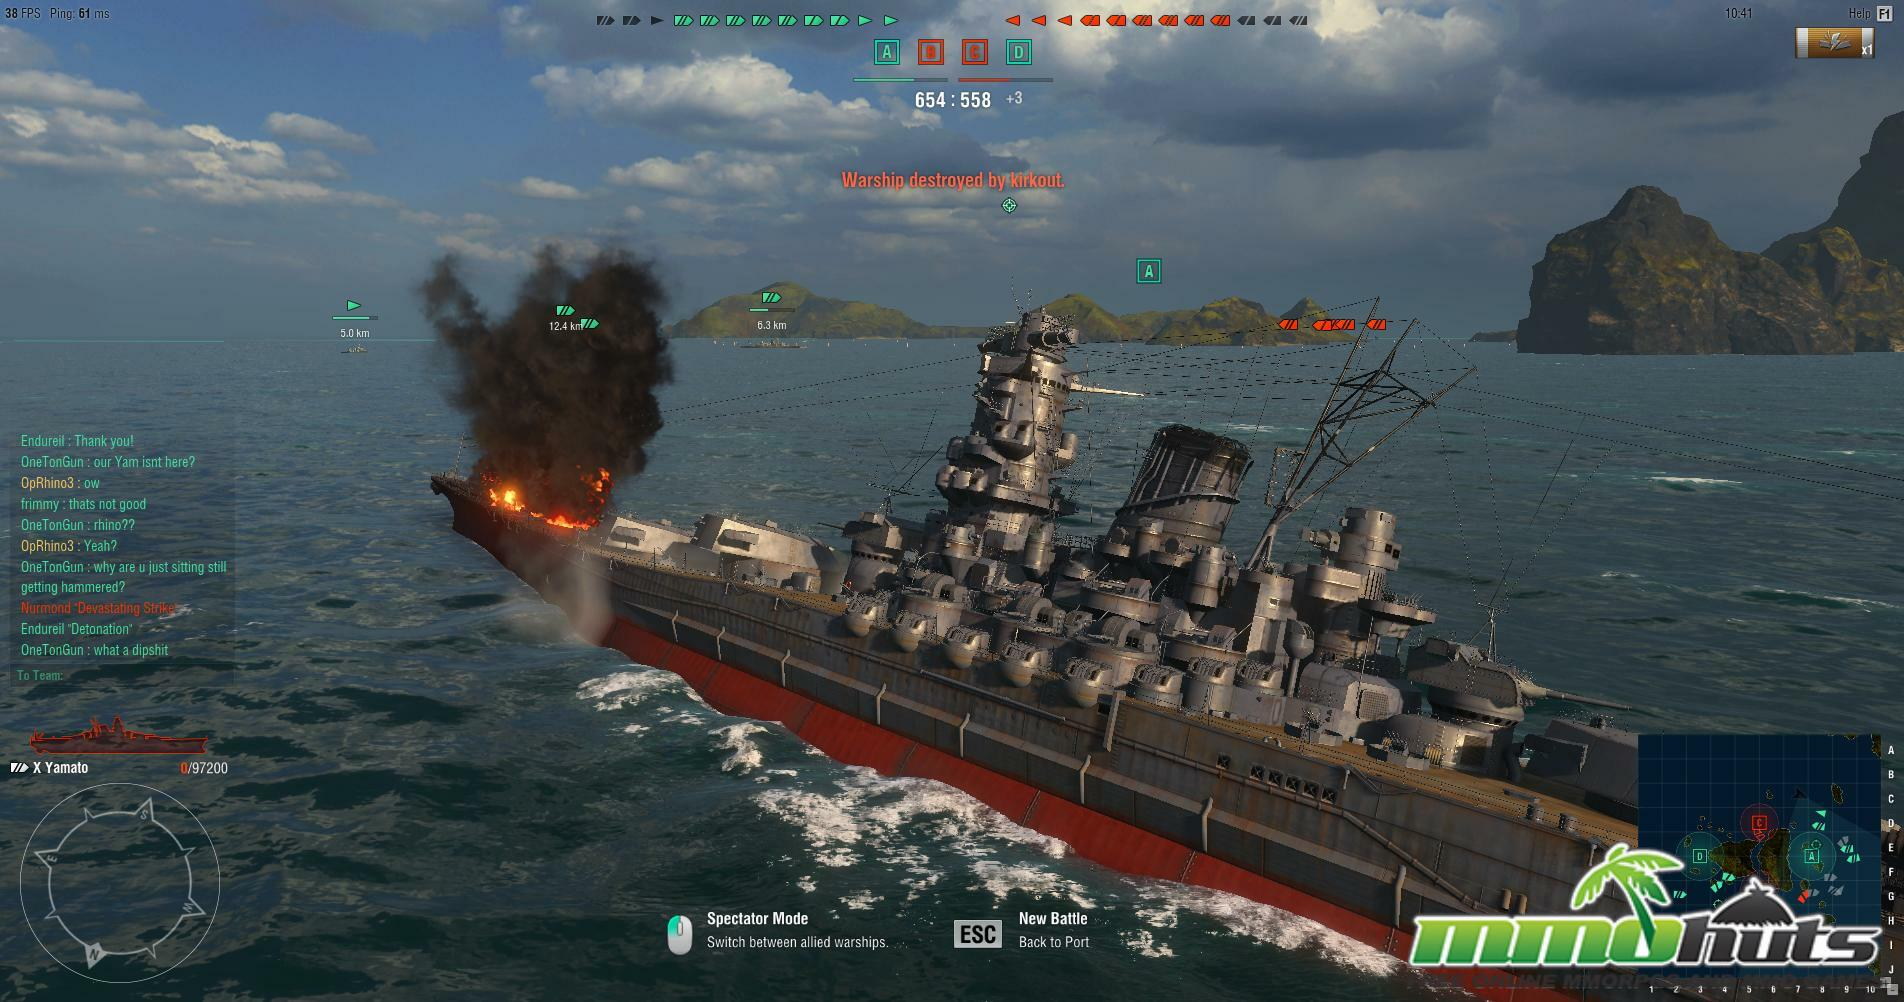 worldofwarships 2015-10-01 16-37-55-76